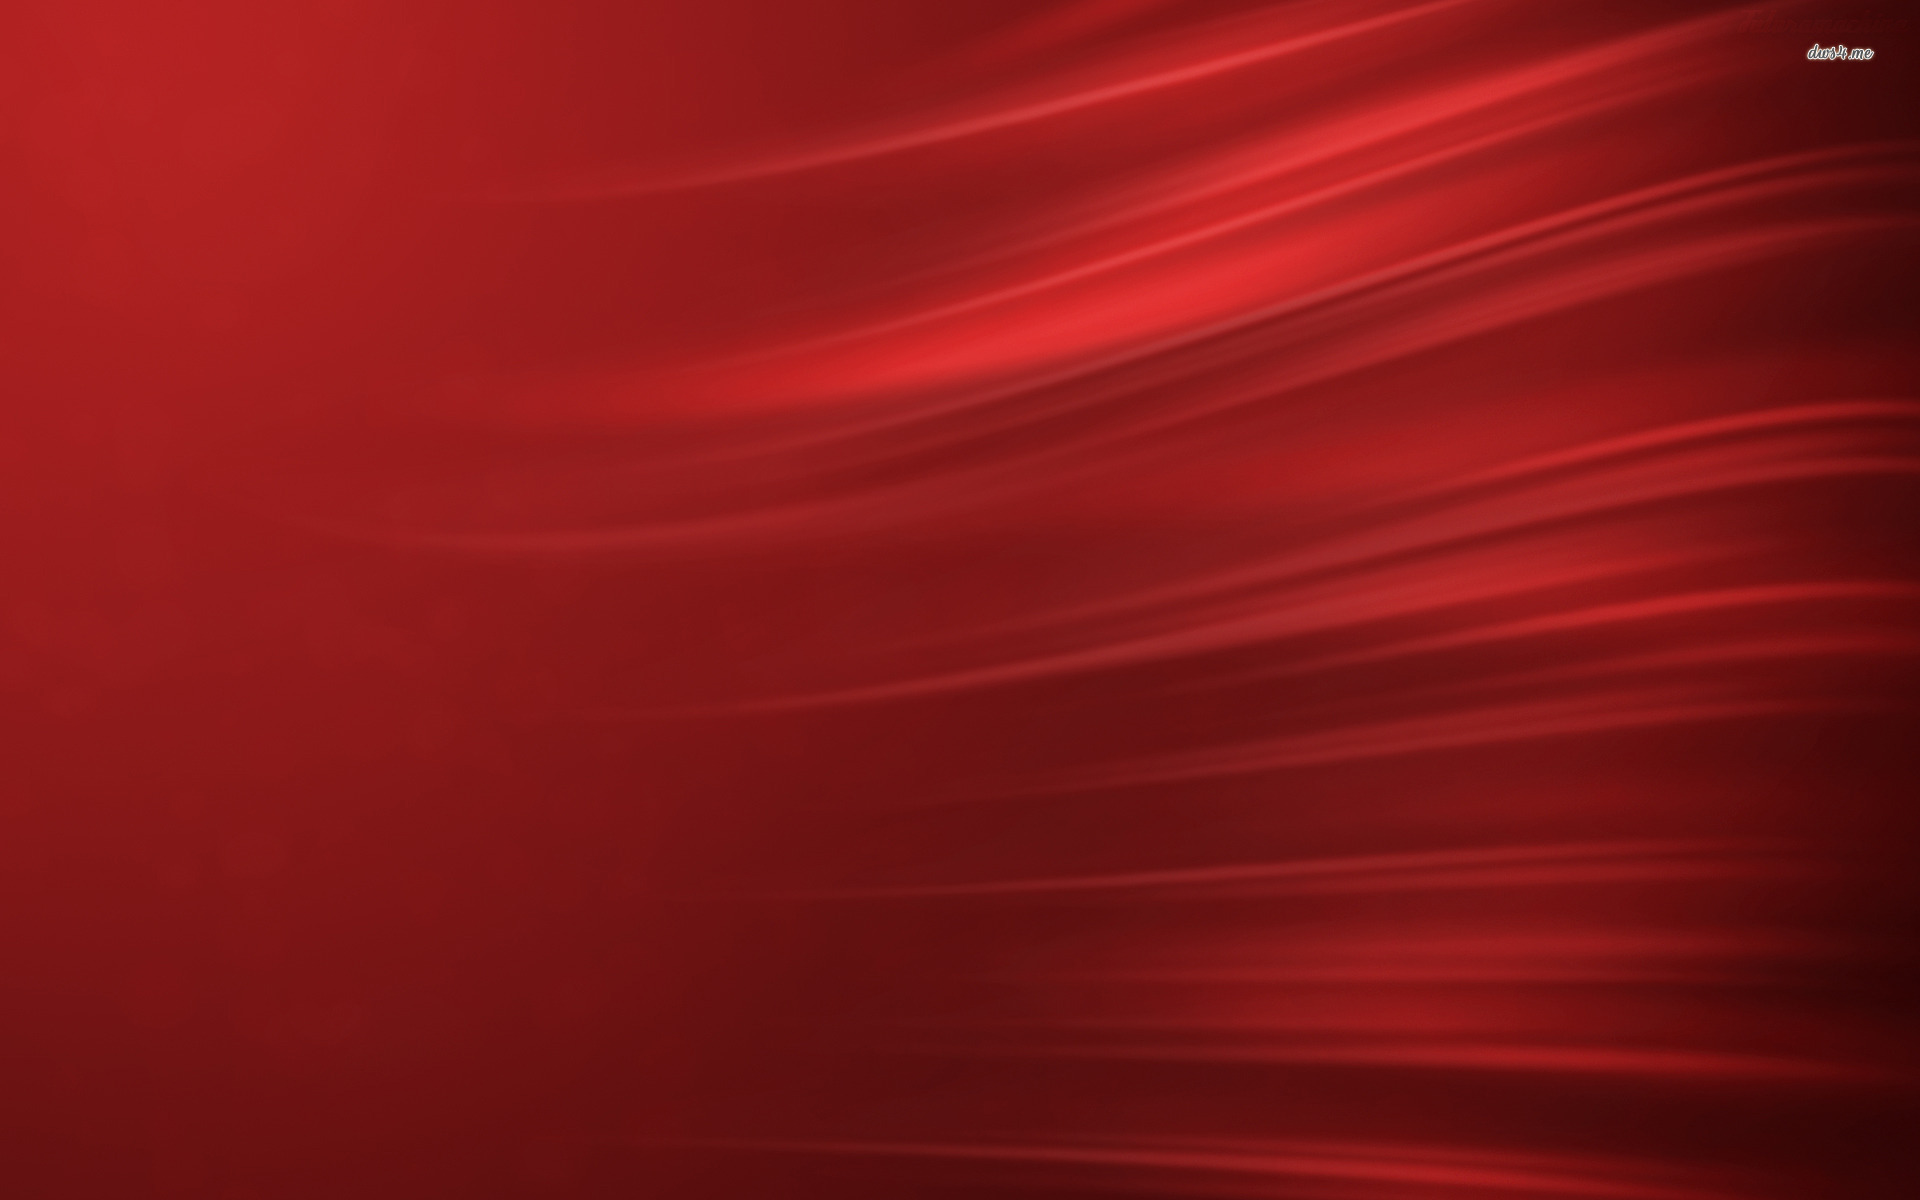 Cool Red Abstract Wallpapers HD 7011 Backgrounds